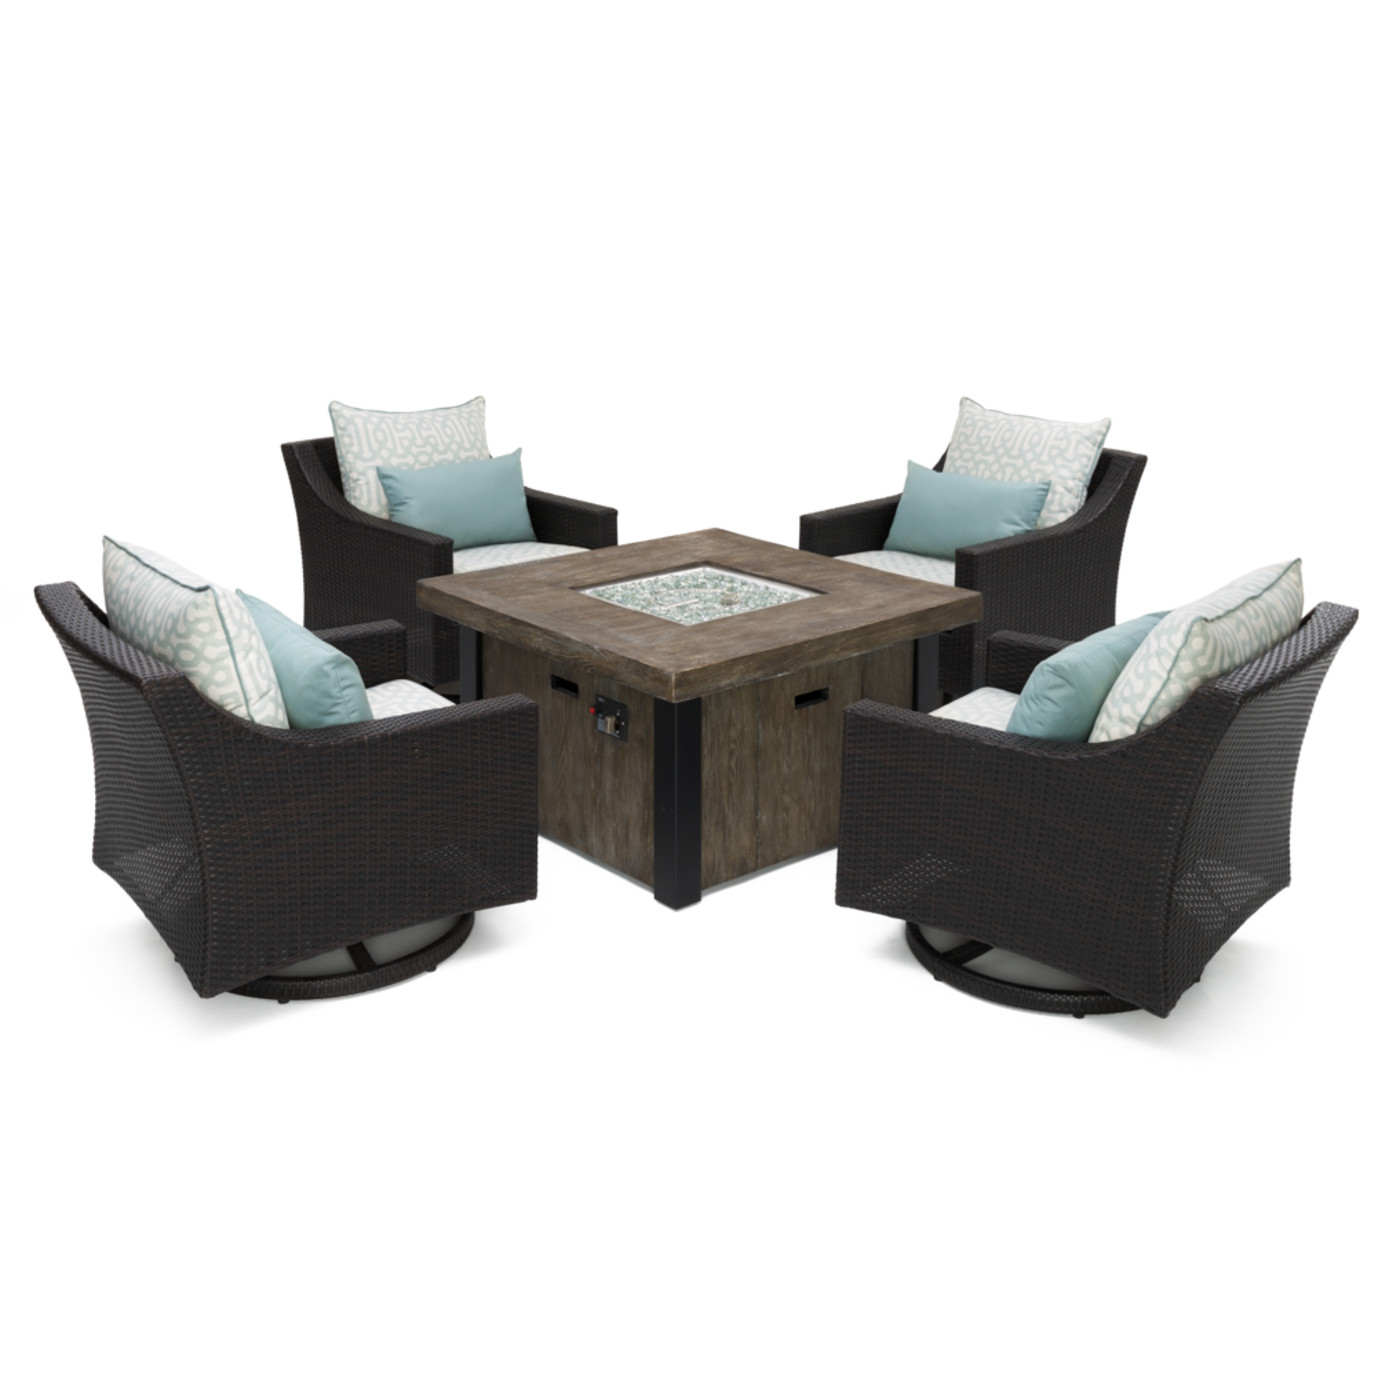 Deco™ Deluxe 5pc Motion Fire Chat Set - Designer Spa Blue